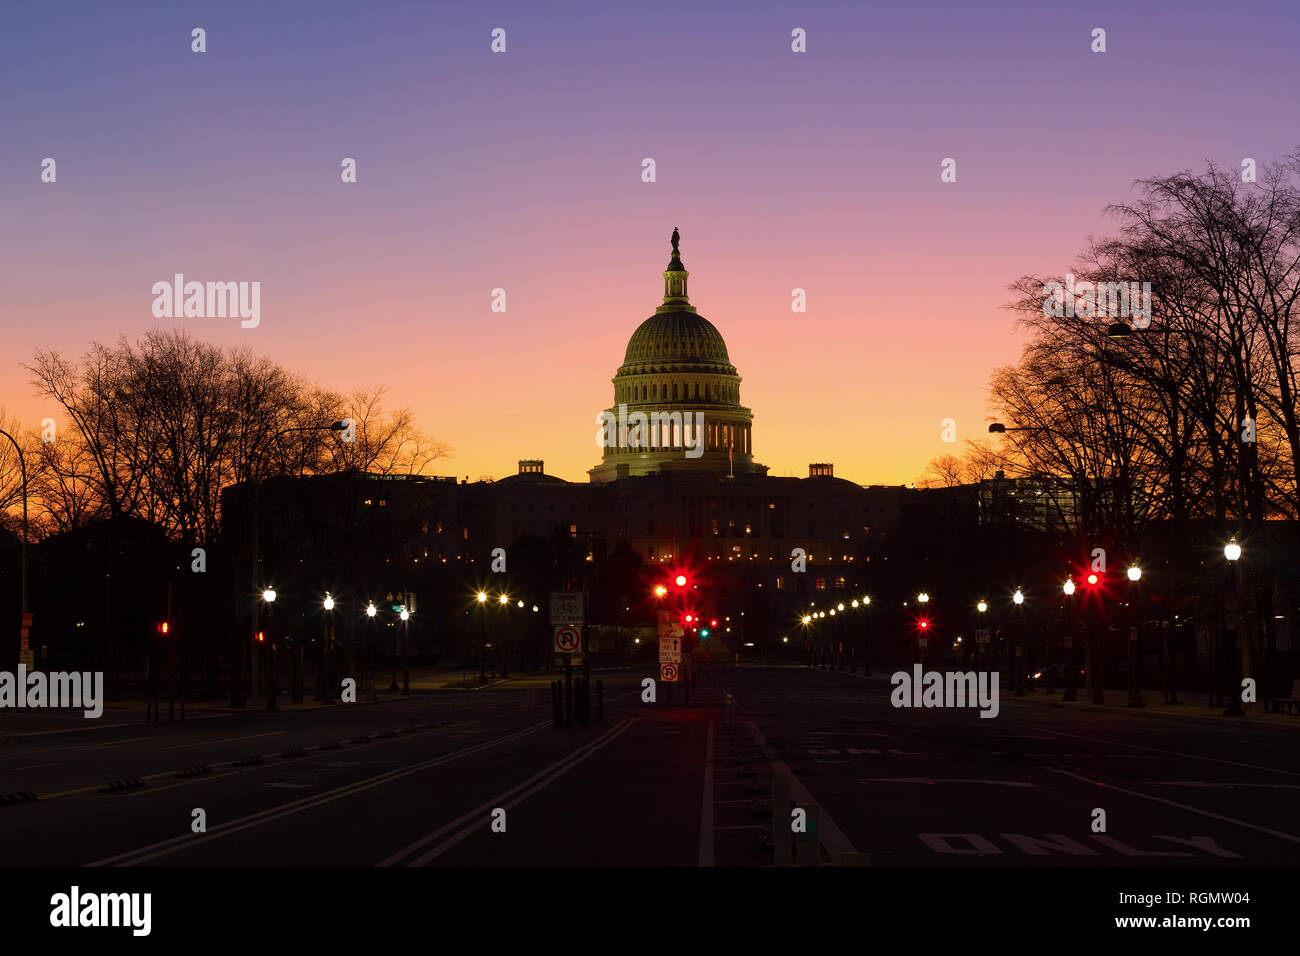 A view on US Capitol from Pennsylvania avenue at dawn in Washington DC, USA. Beautiful winter sunrise with clear skies. Stock Photo